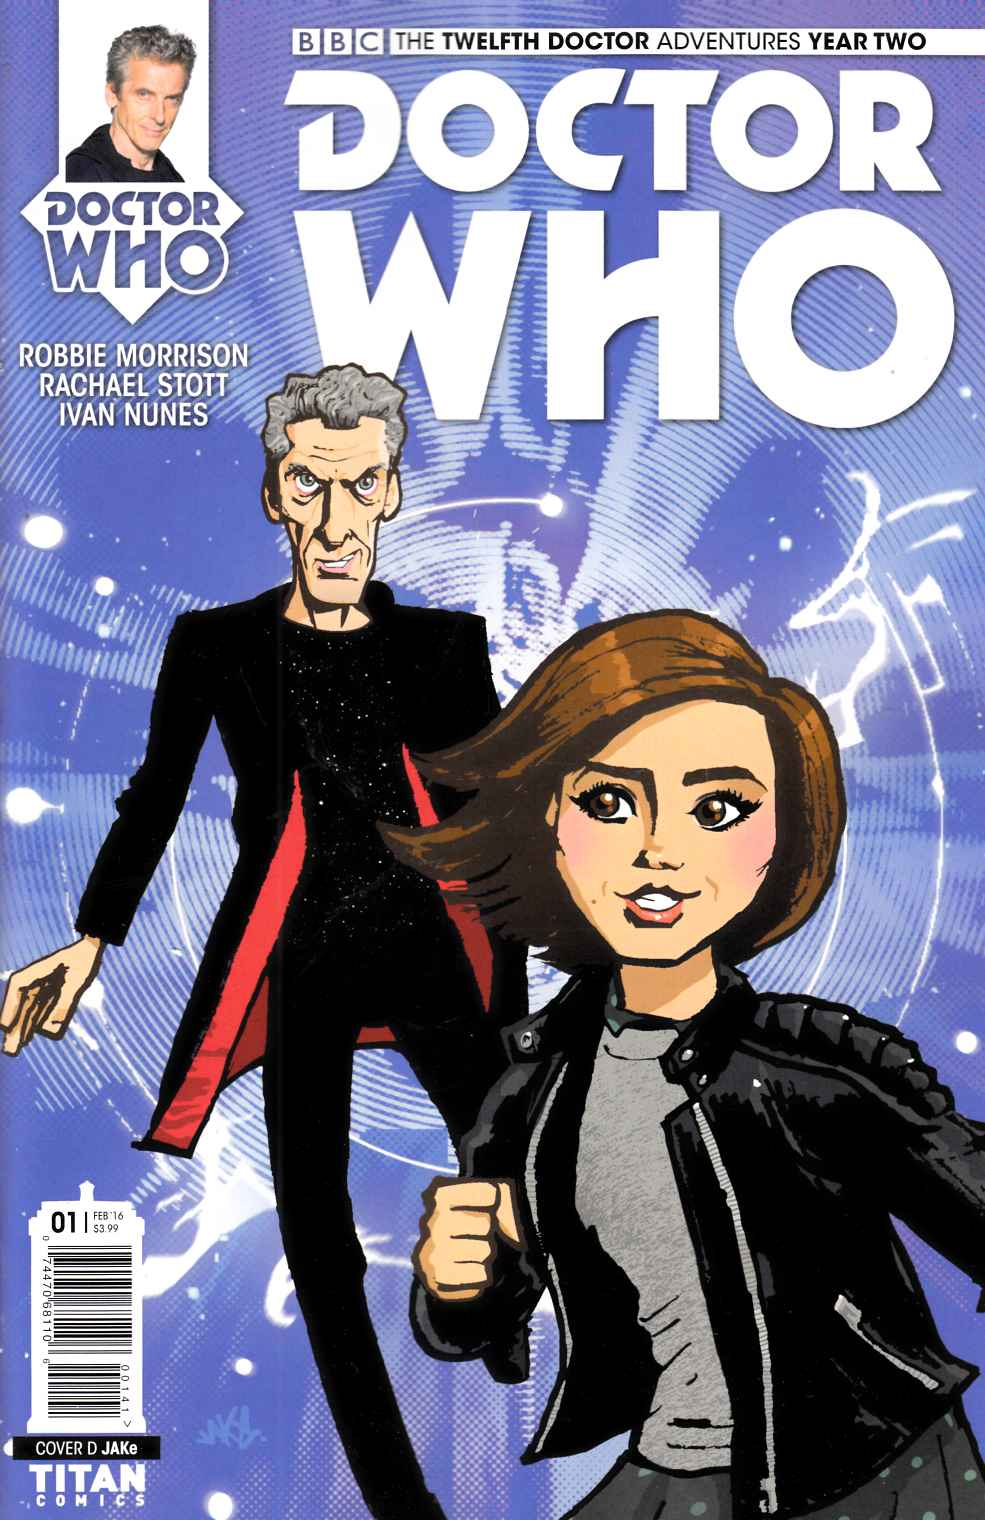 Doctor Who 12th Doctor Year 2 #1 Jake Variant Cover [Titan Comic] THUMBNAIL